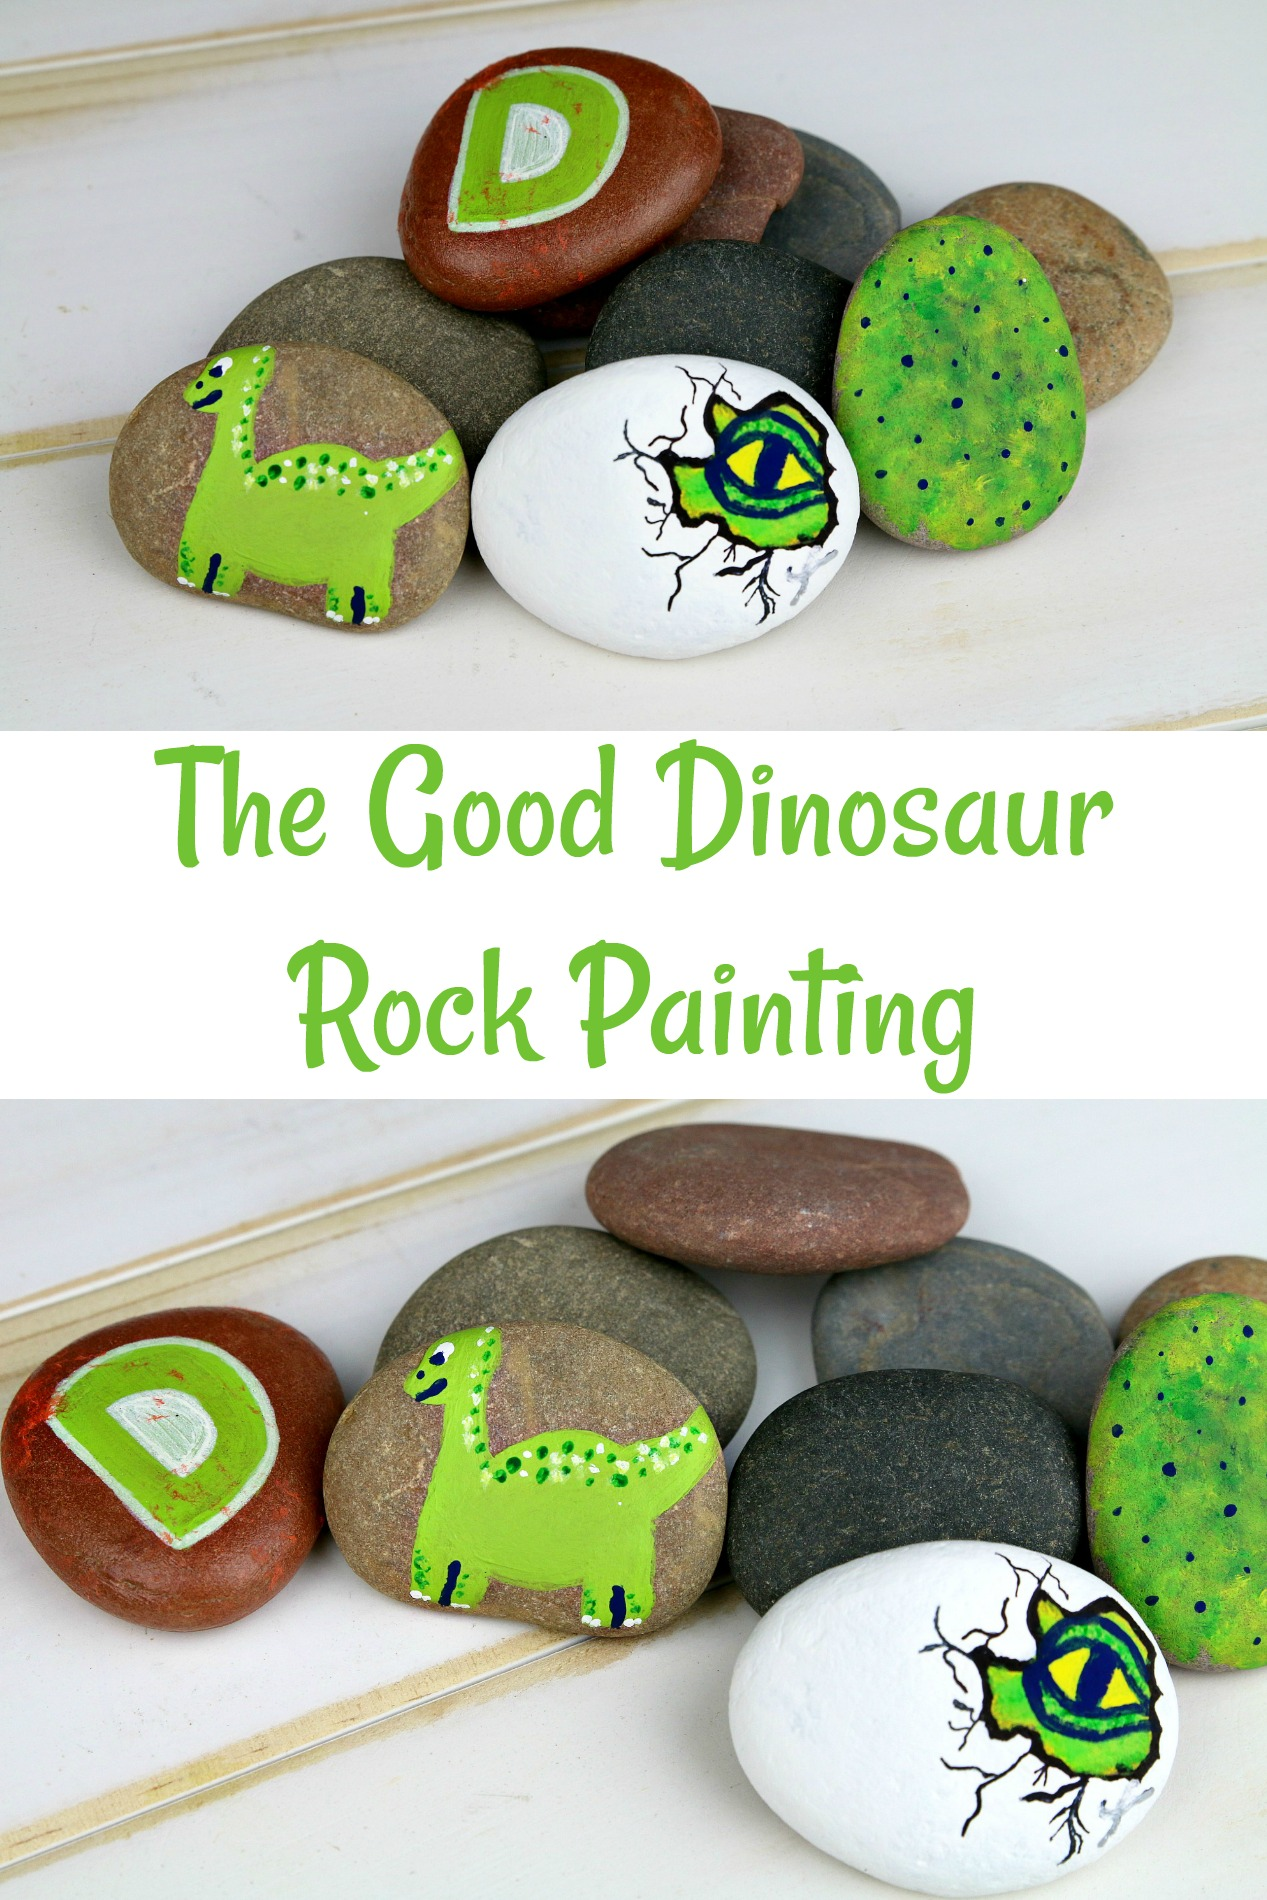 Disney Pixar The Good Dinosaur Rock Painting